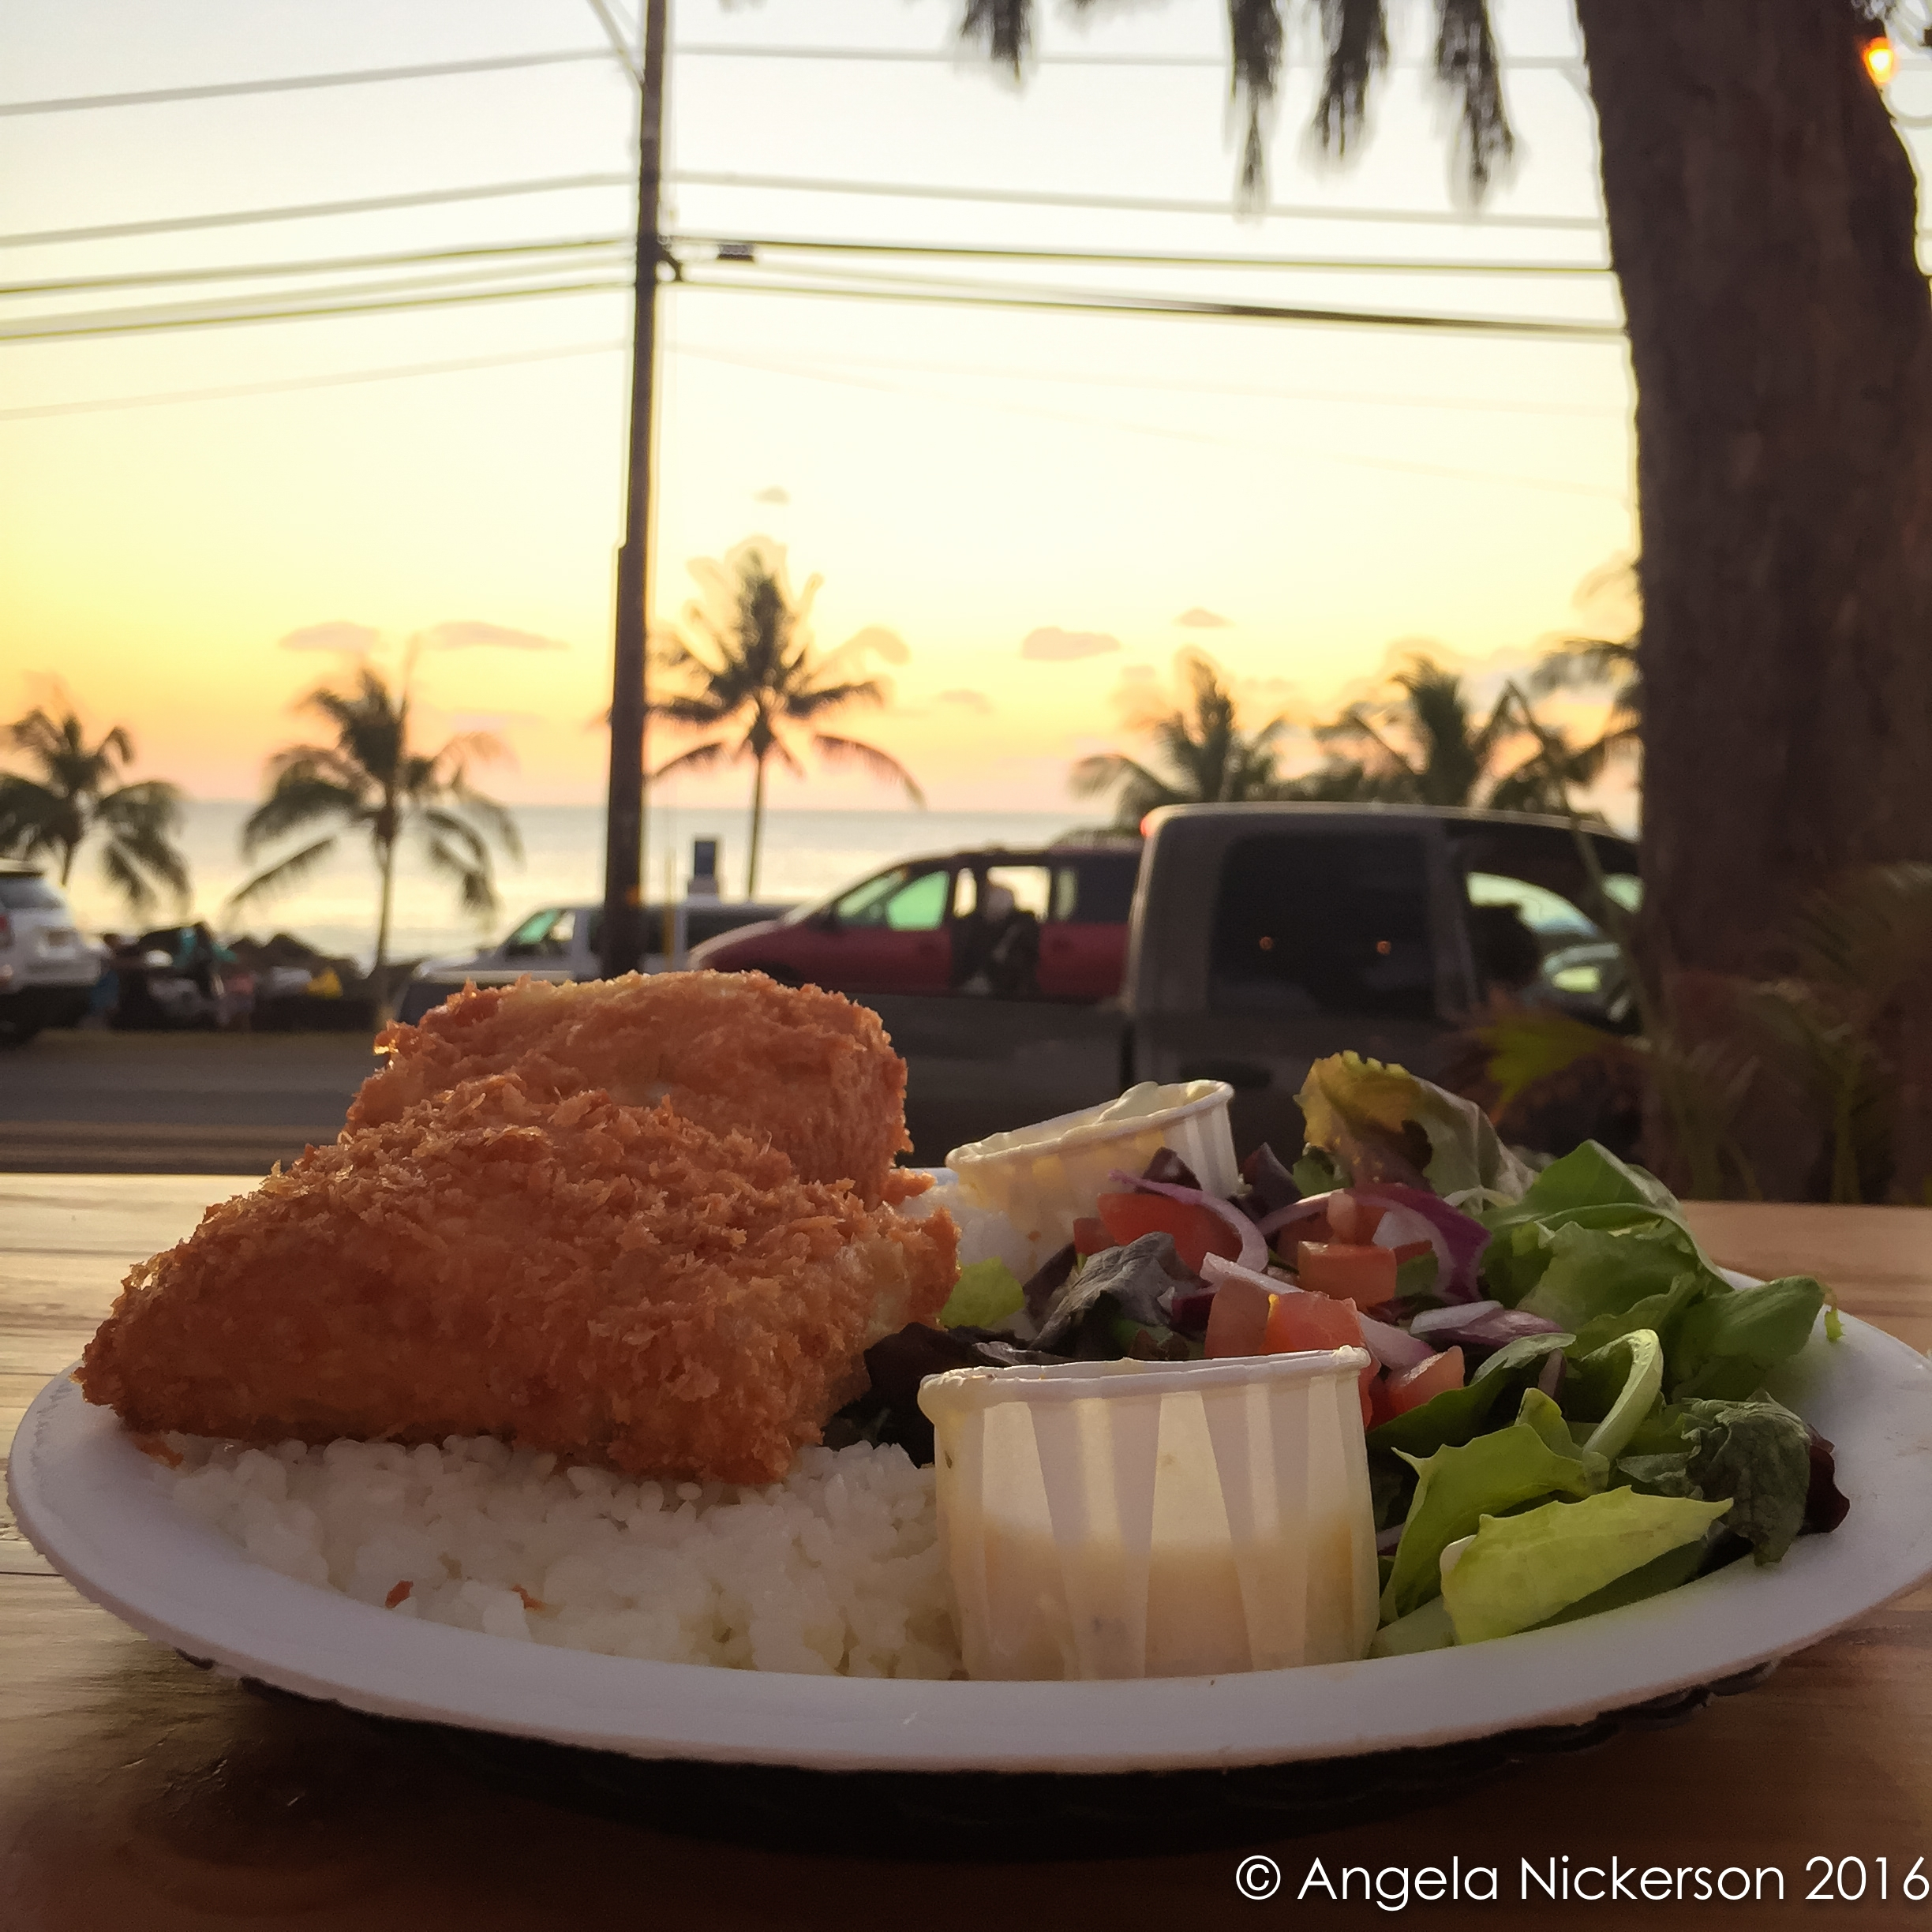 Coconut-crusted MahiMahi from The Spot on Sunset Beach